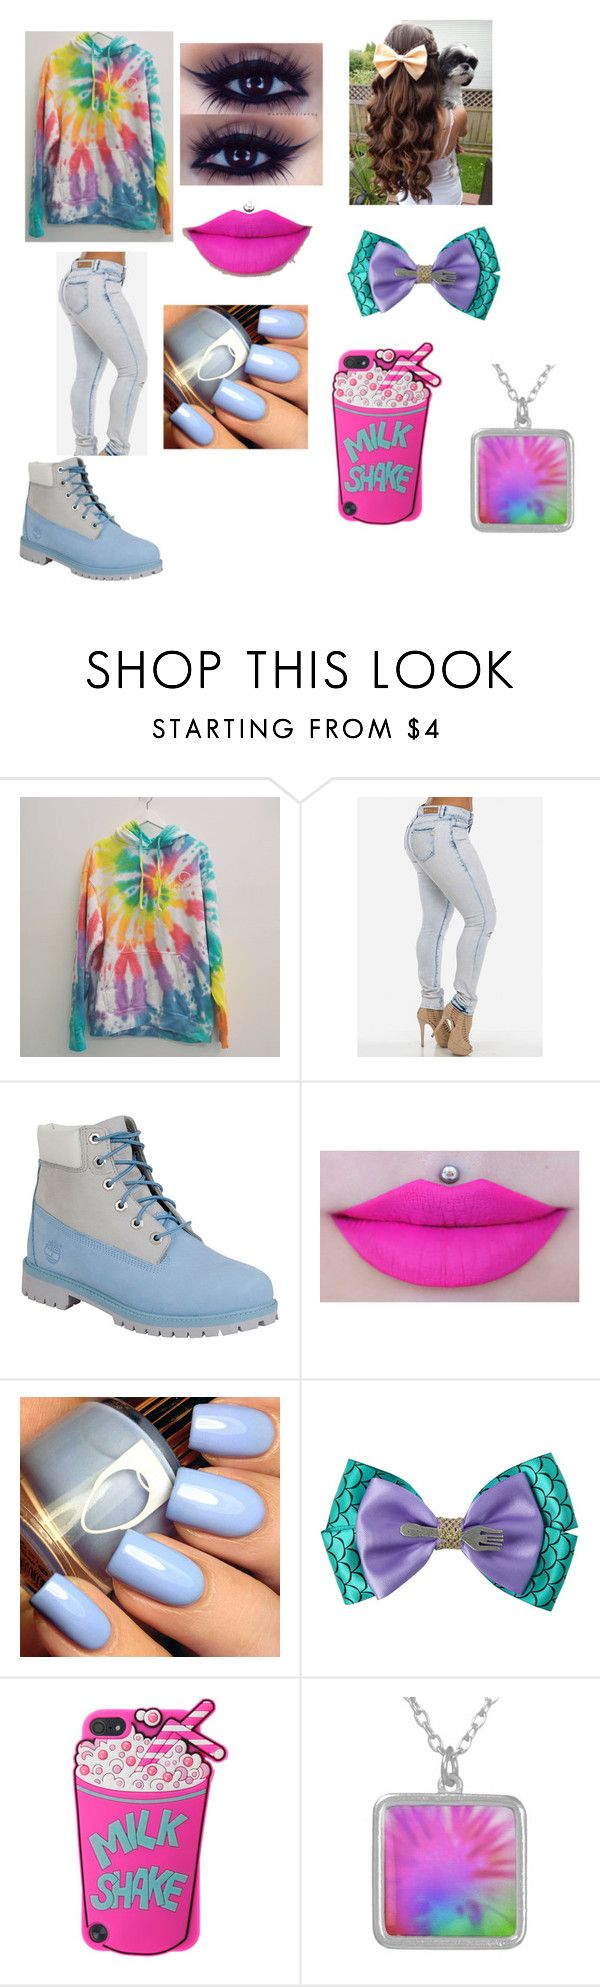 """""""Tie Dye #2"""" by kaywolf ❤ liked on Polyvore featuring mode, Timberland et Disney"""